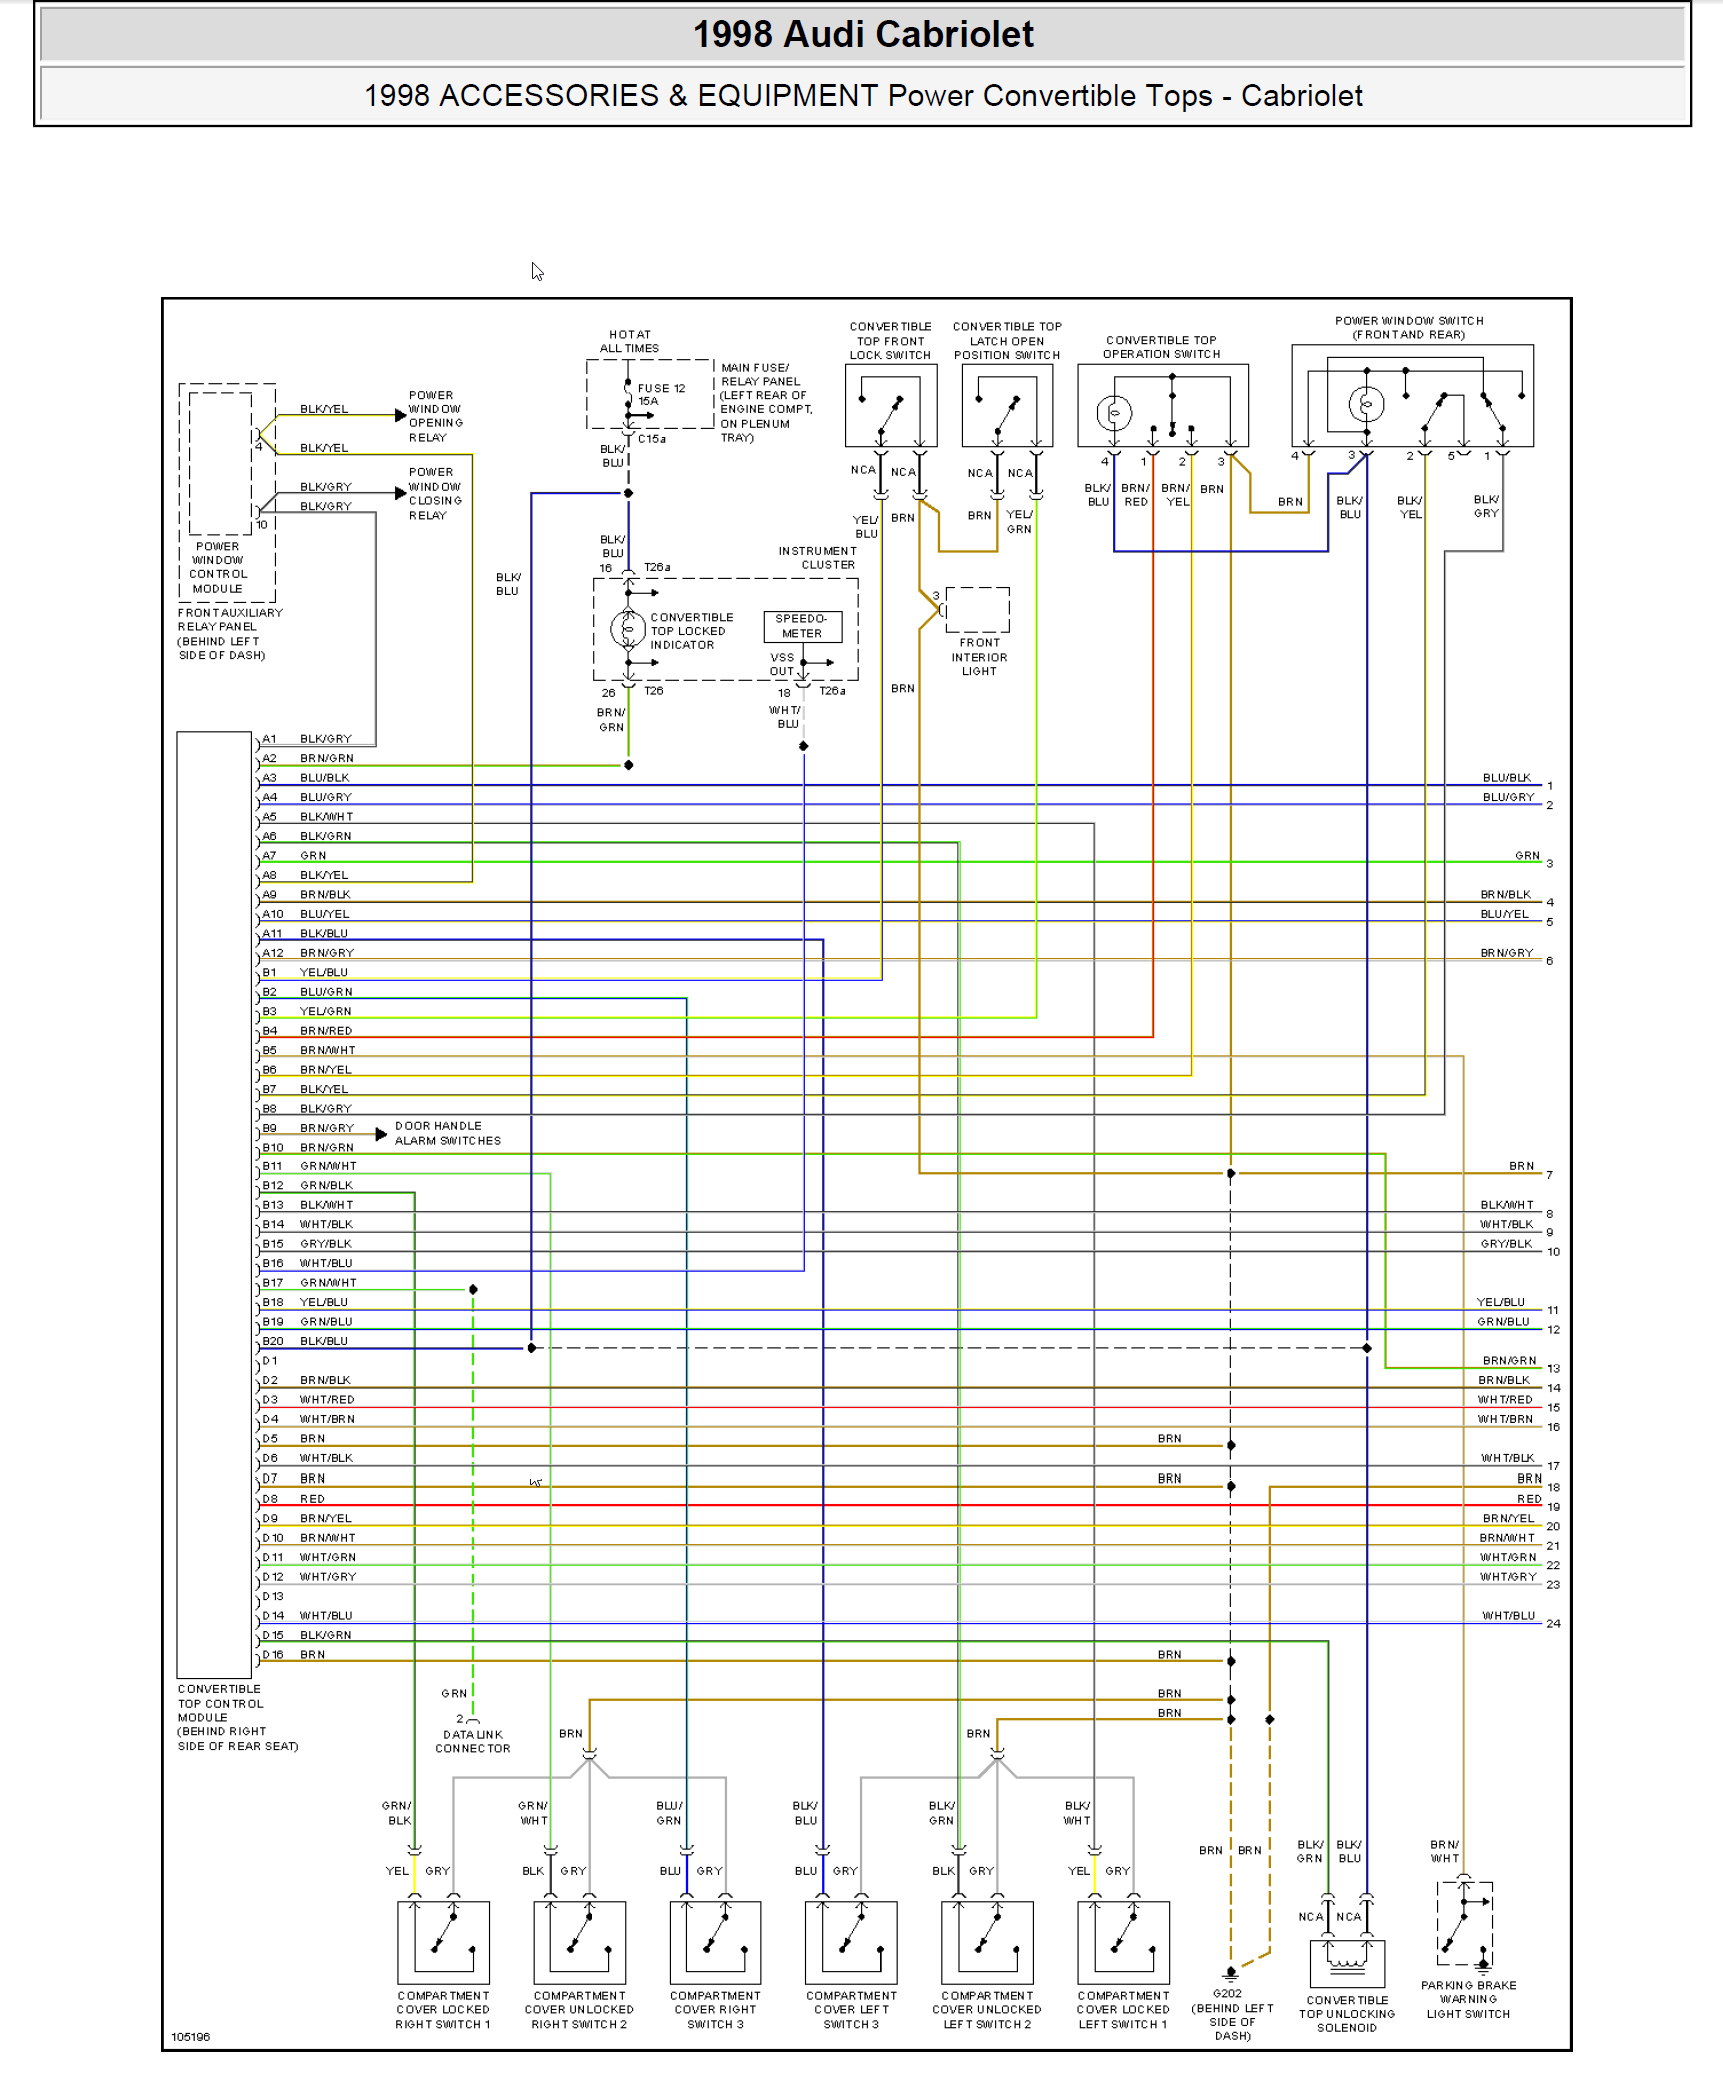 audi cabriolet wiring diagram the top has always work fine on my 1998 audi cabriolet but ...